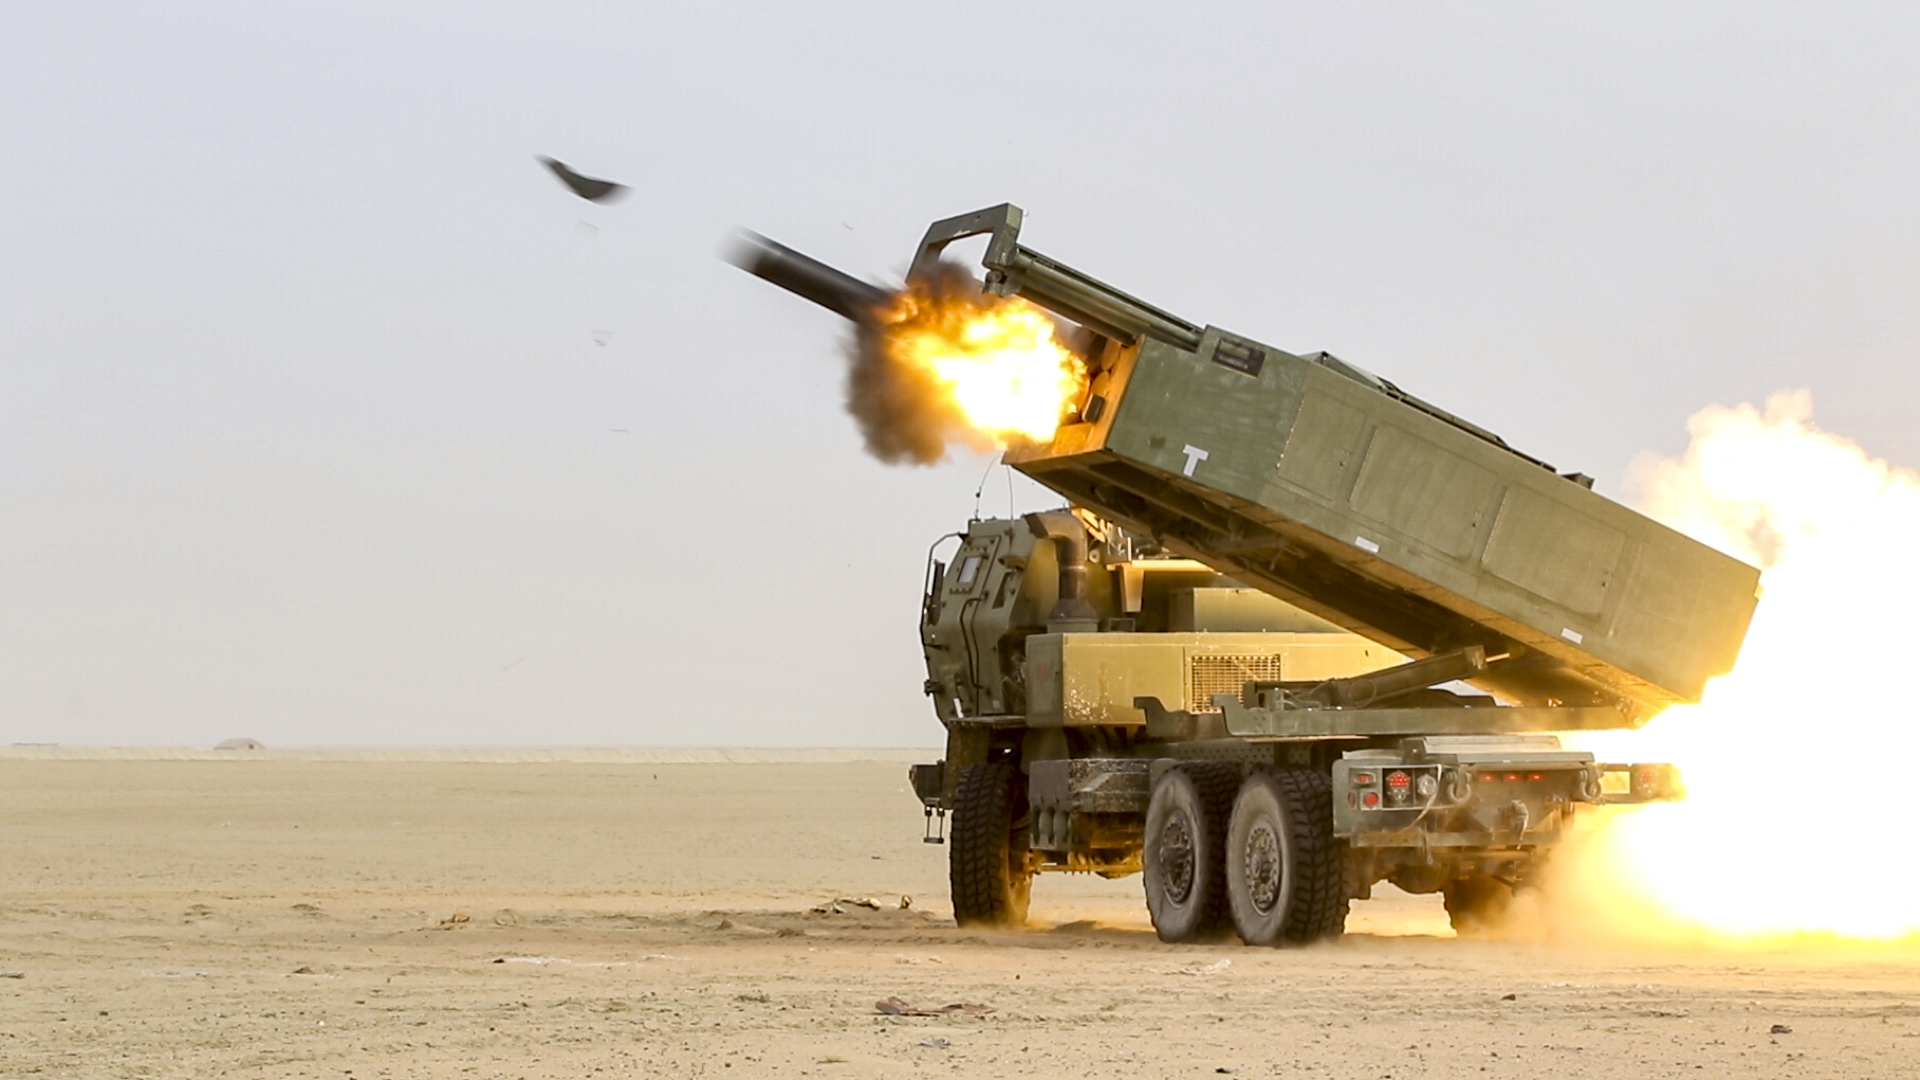 U.S. Soldiers assigned to the 65th Field Artillery Brigade fire a High Mobility Artillery Rocket System (HIMARS) during a joint live-fire exercise with the Kuwait Land Forces, Jan. 8, 2019, near Camp Buehring, Kuwait. The Army's future precision strike missile will initially be fired from a HIMARS launcher. (Photo by Sgt. Bill Boecker/U.S. Army)